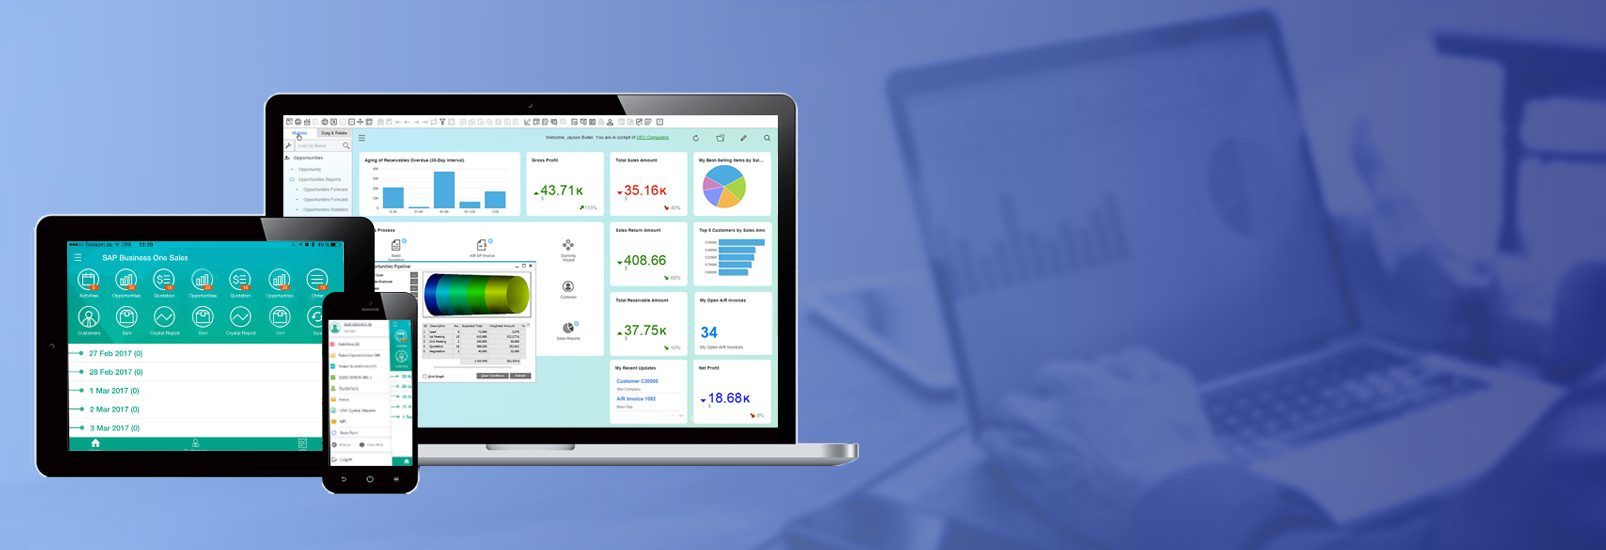 SAP-Business-One-ERP-for-Small-Business